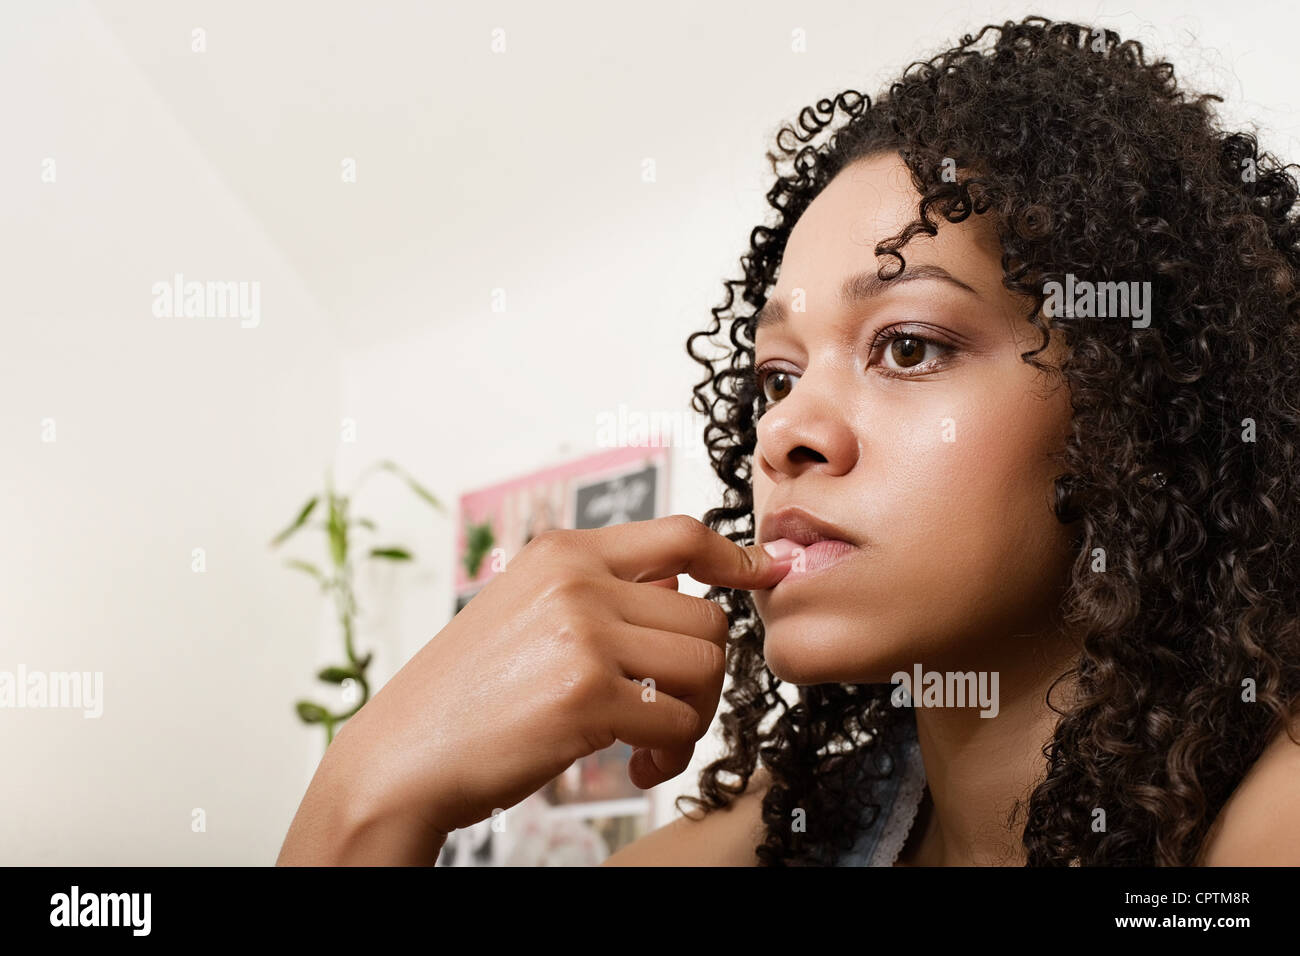 Young woman looking worried - Stock Image